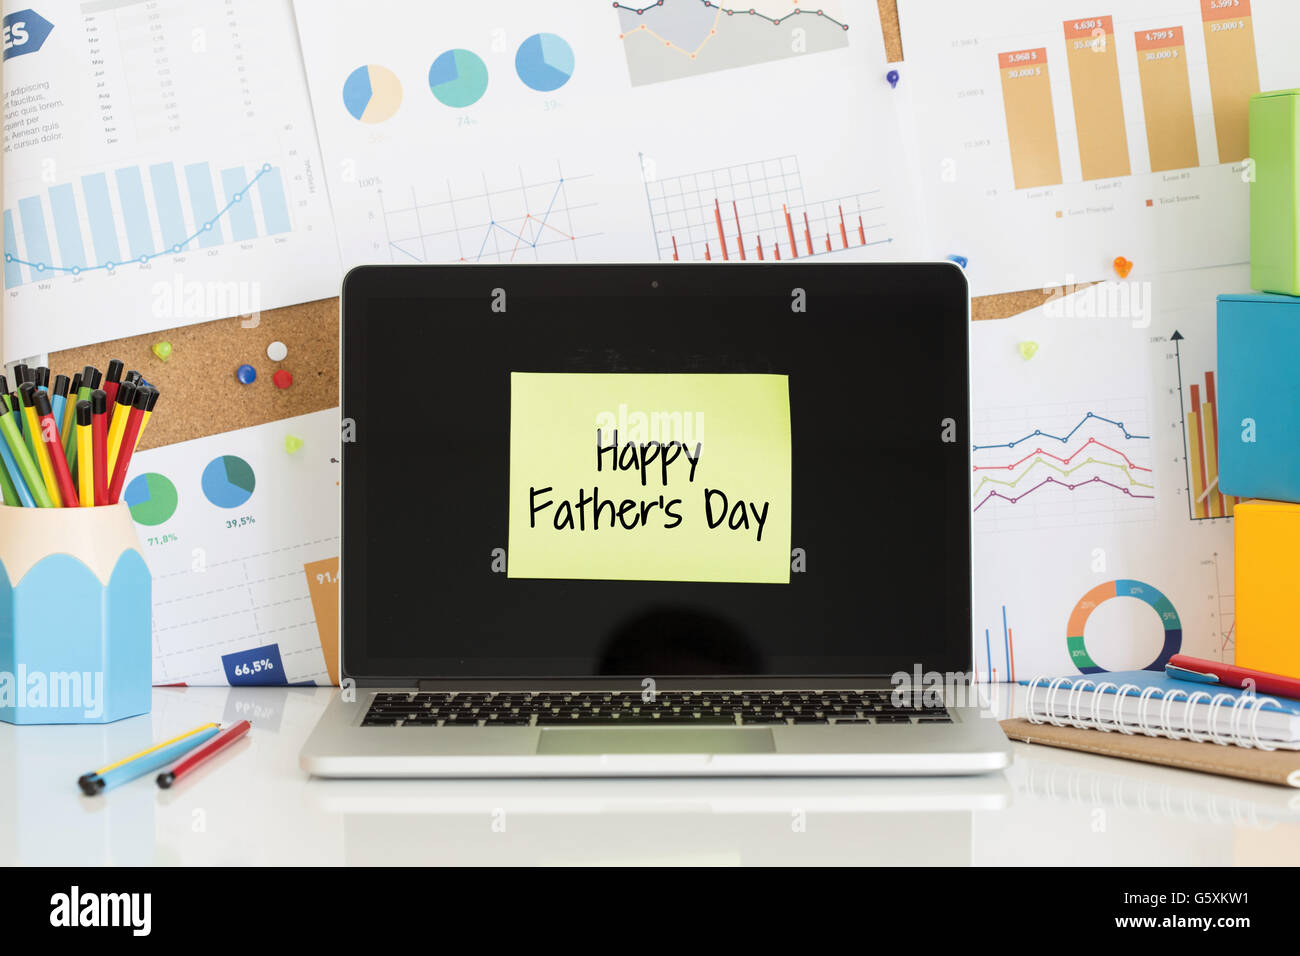 Happy Father S Day Sticky Note Pasted On The Laptop Screen Stock Photo Alamy